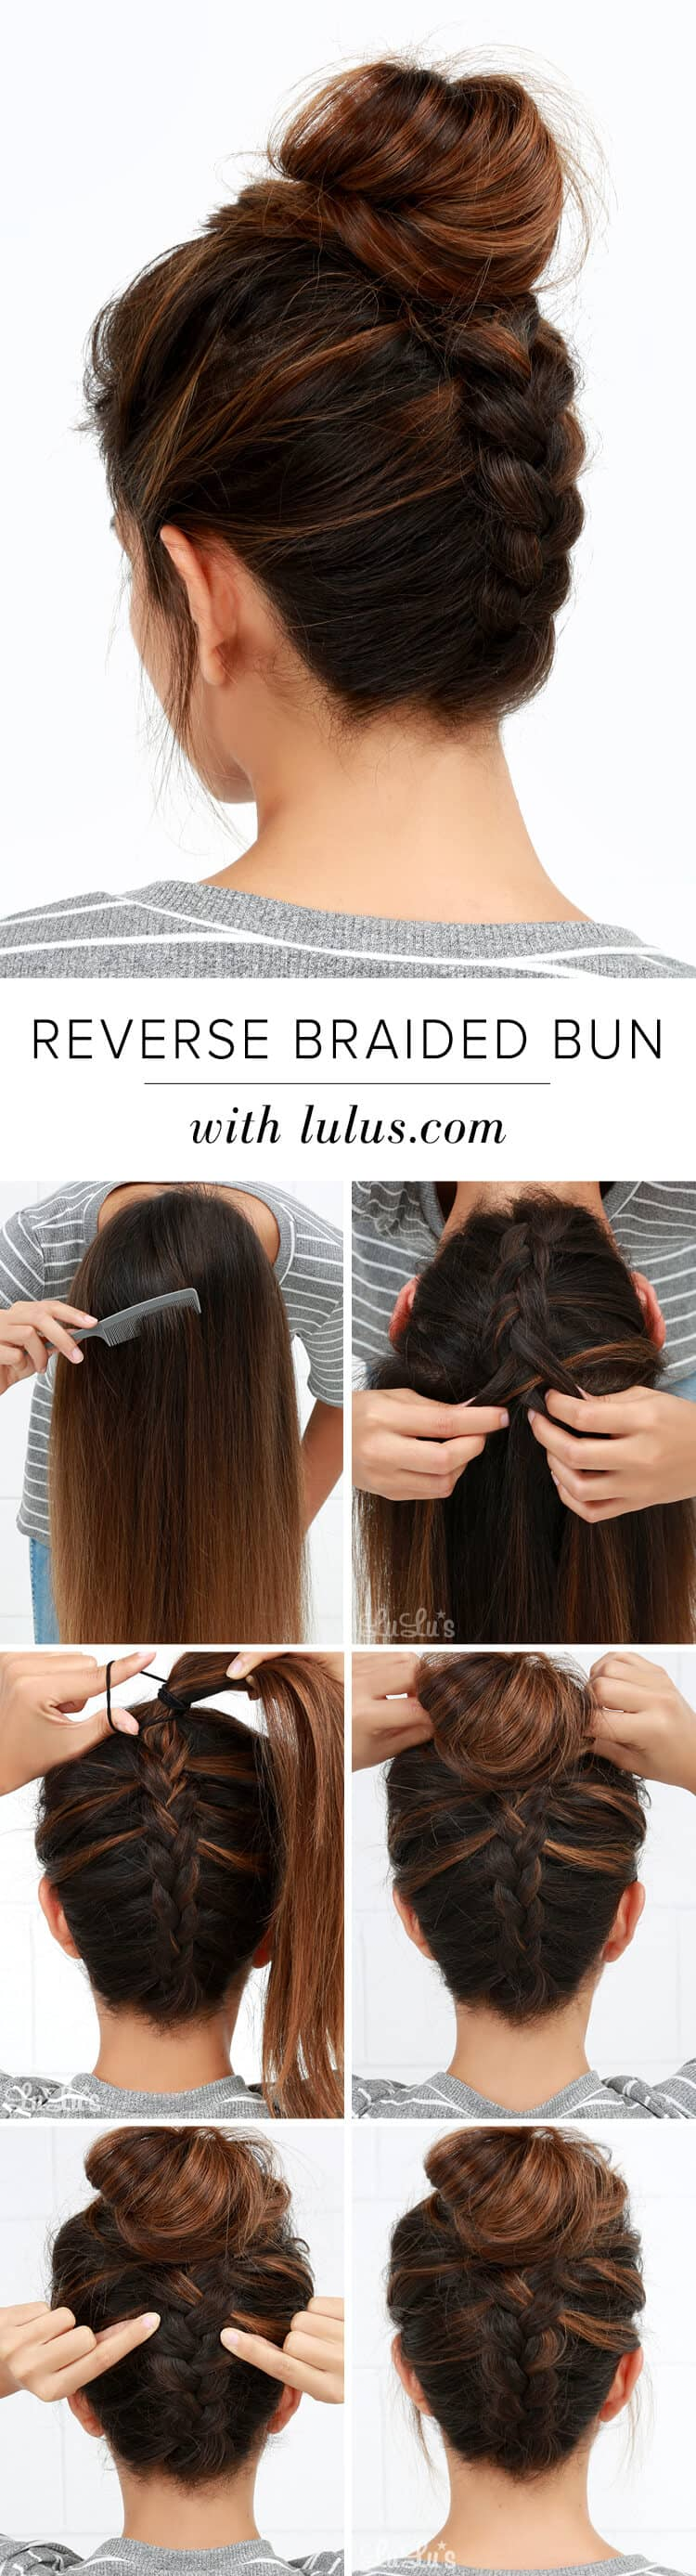 Reverse Normal Braided Bun Updo